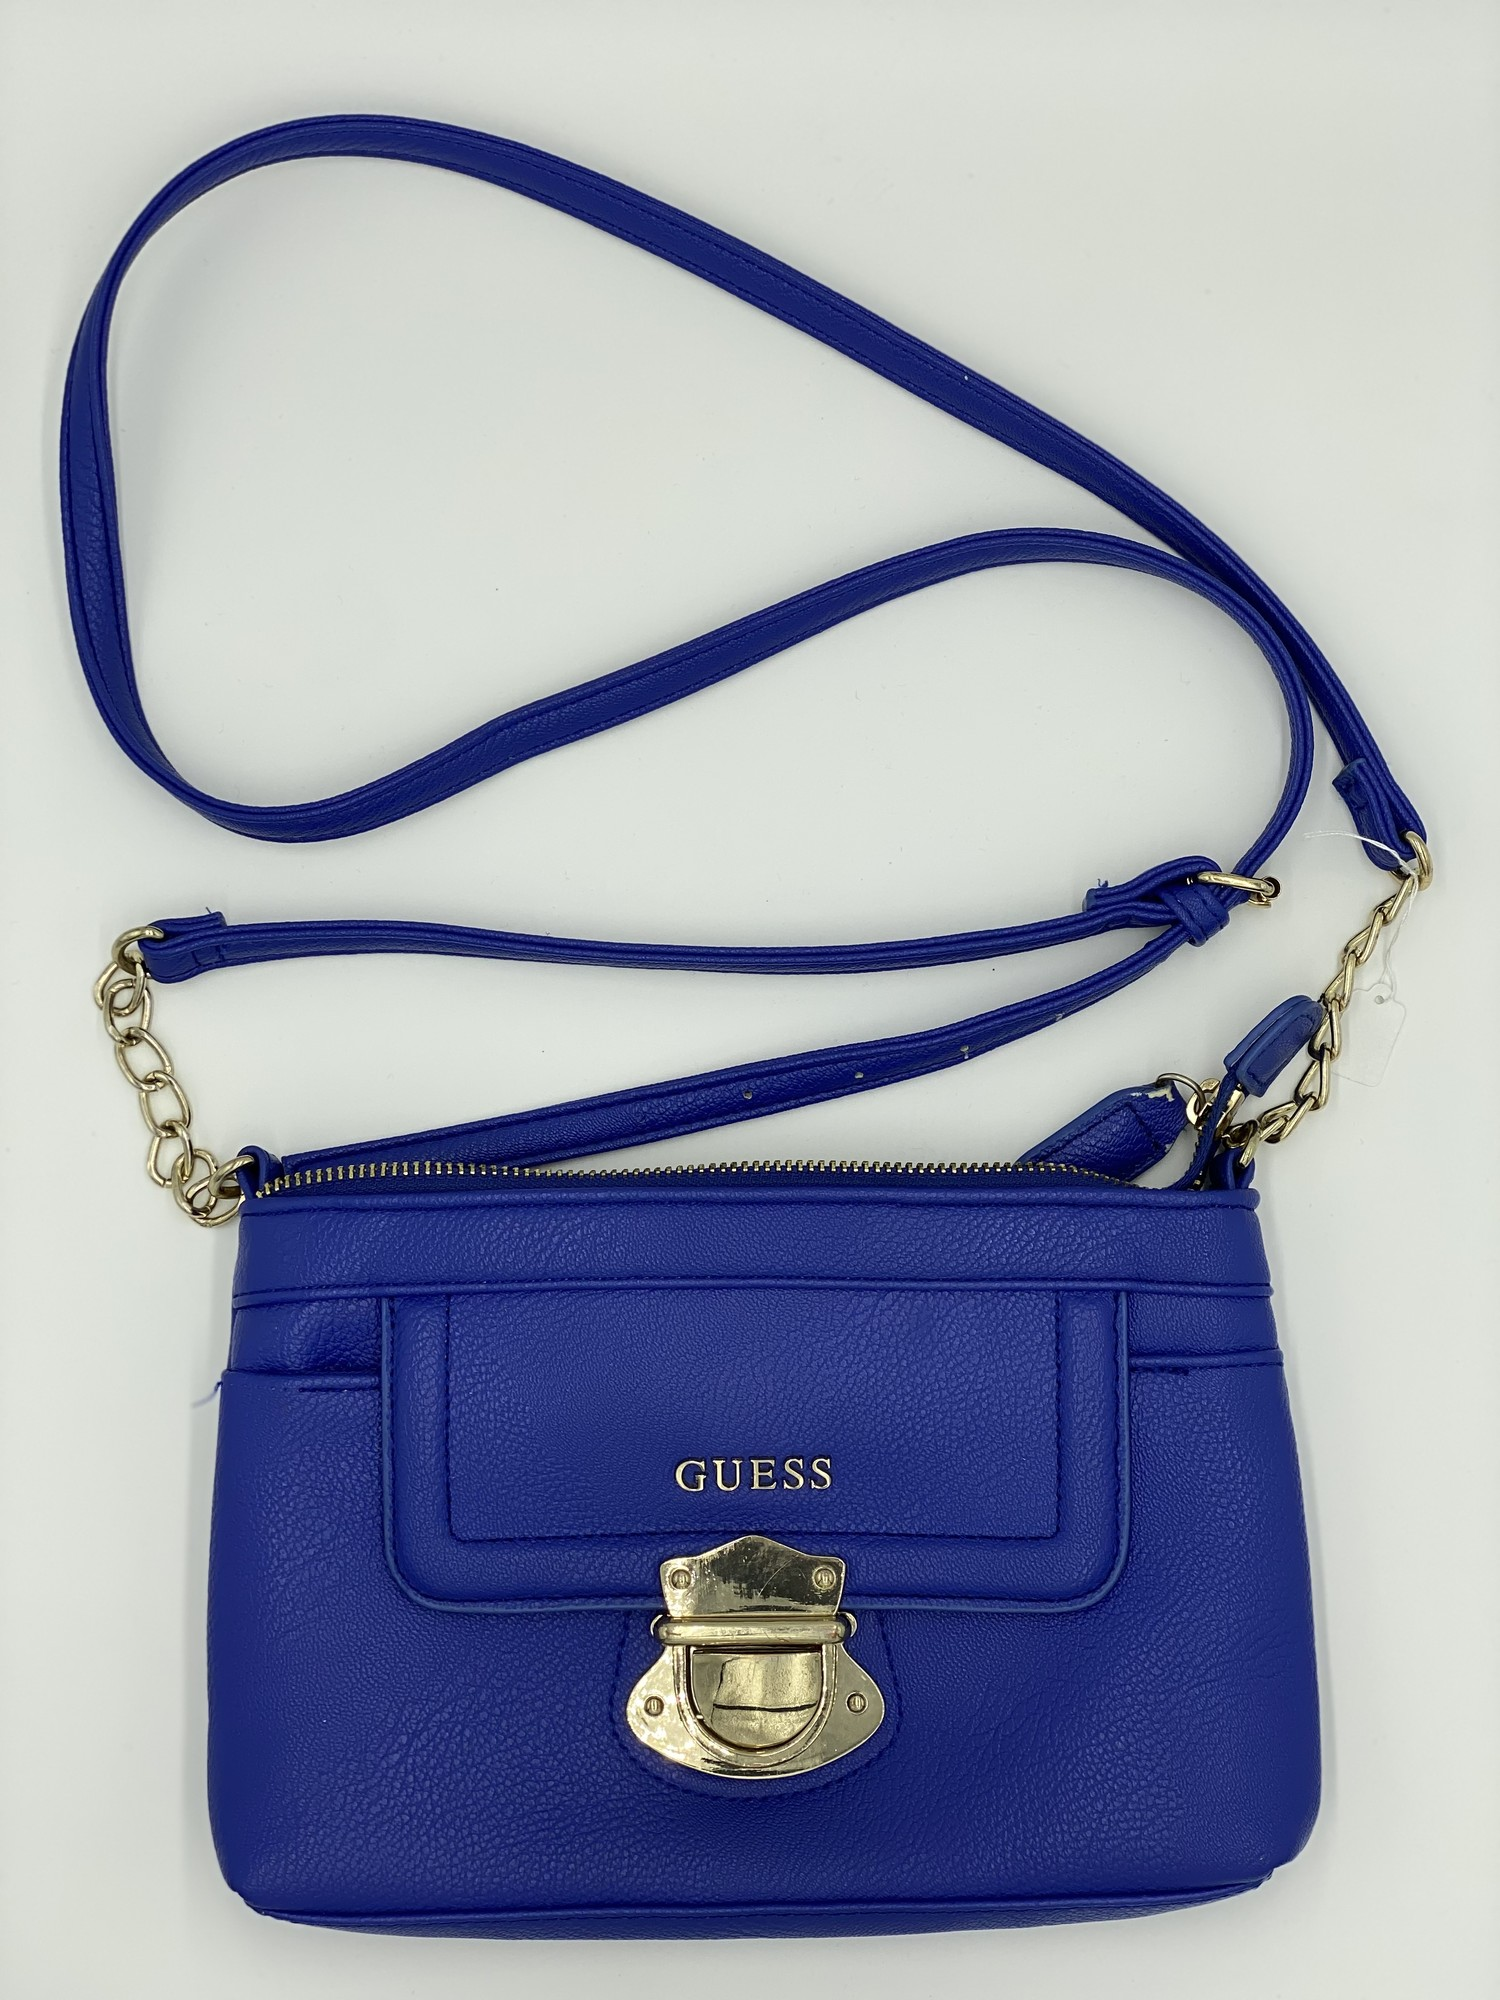 Guess Crossbody, Violet, Size: None